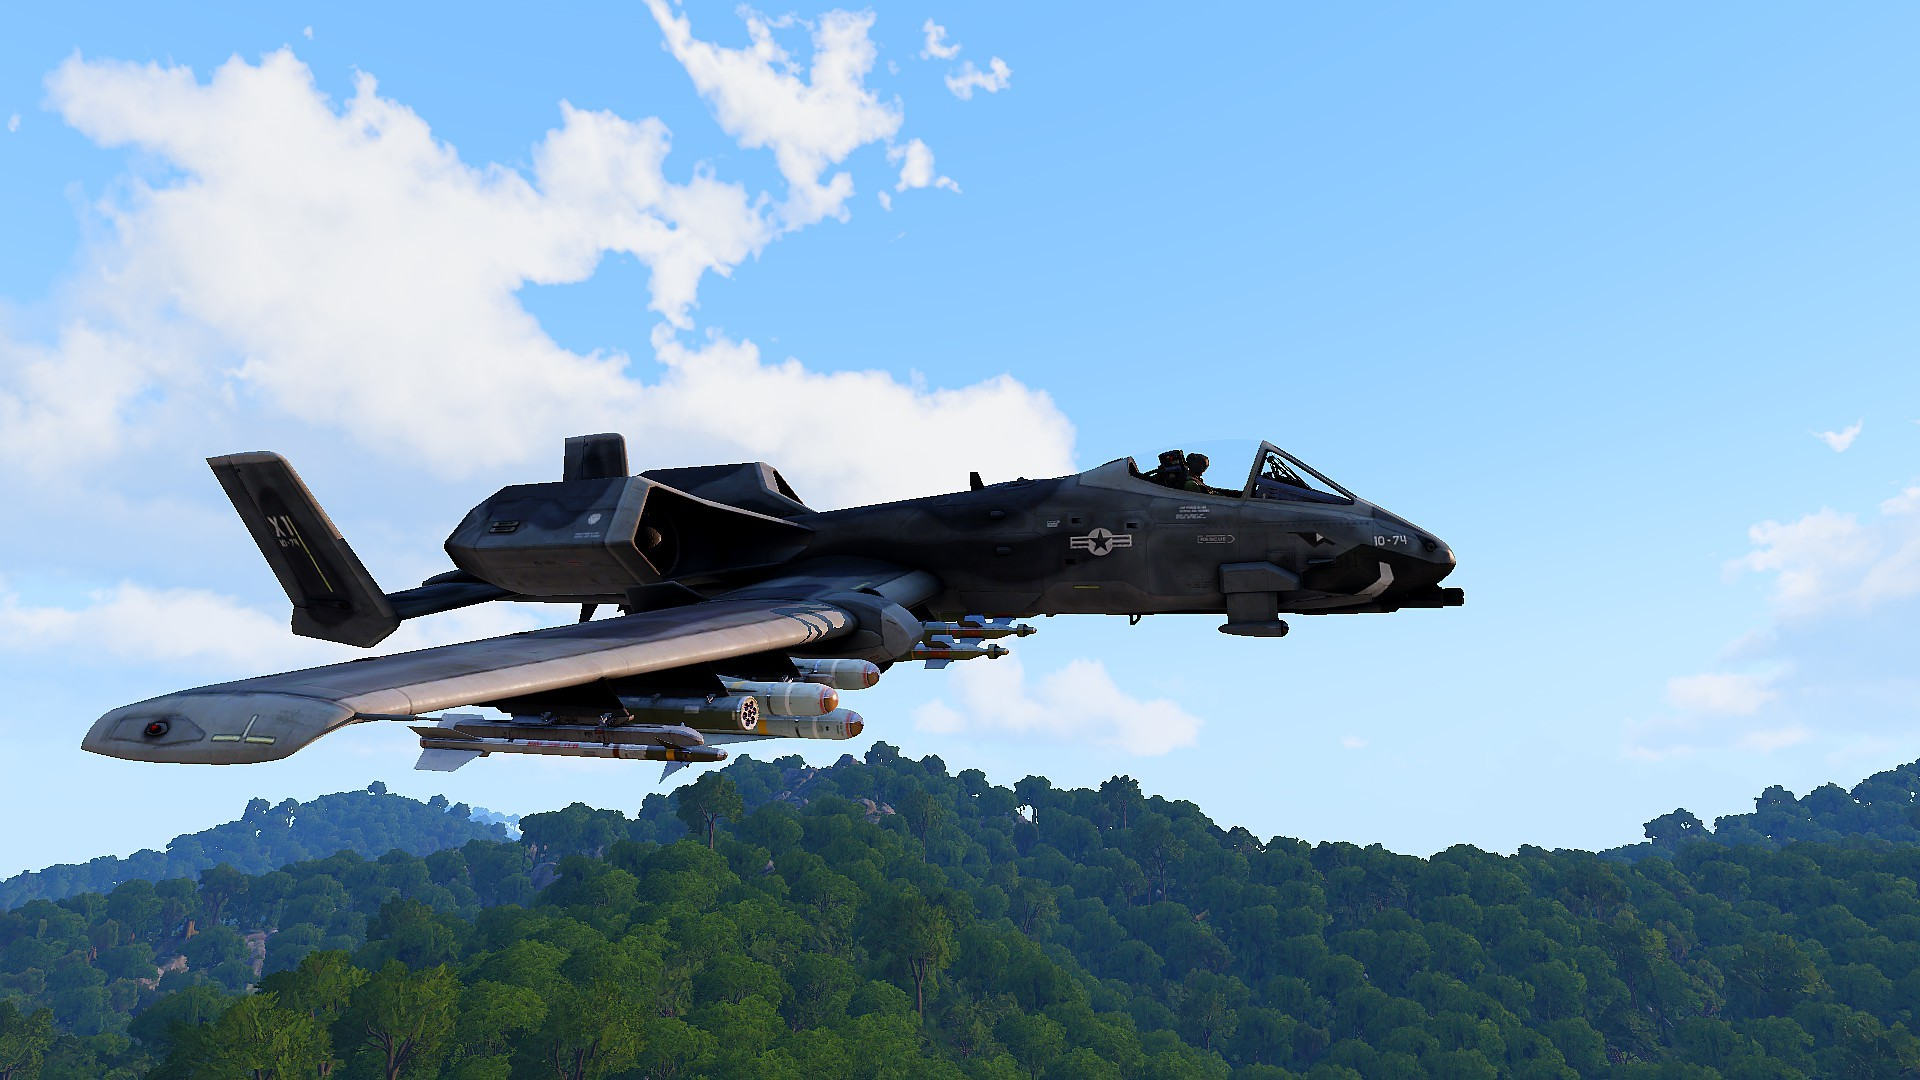 How To Get Live Wallpapers On Iphone 5 A10 Warthog Wallpaper 74 Images